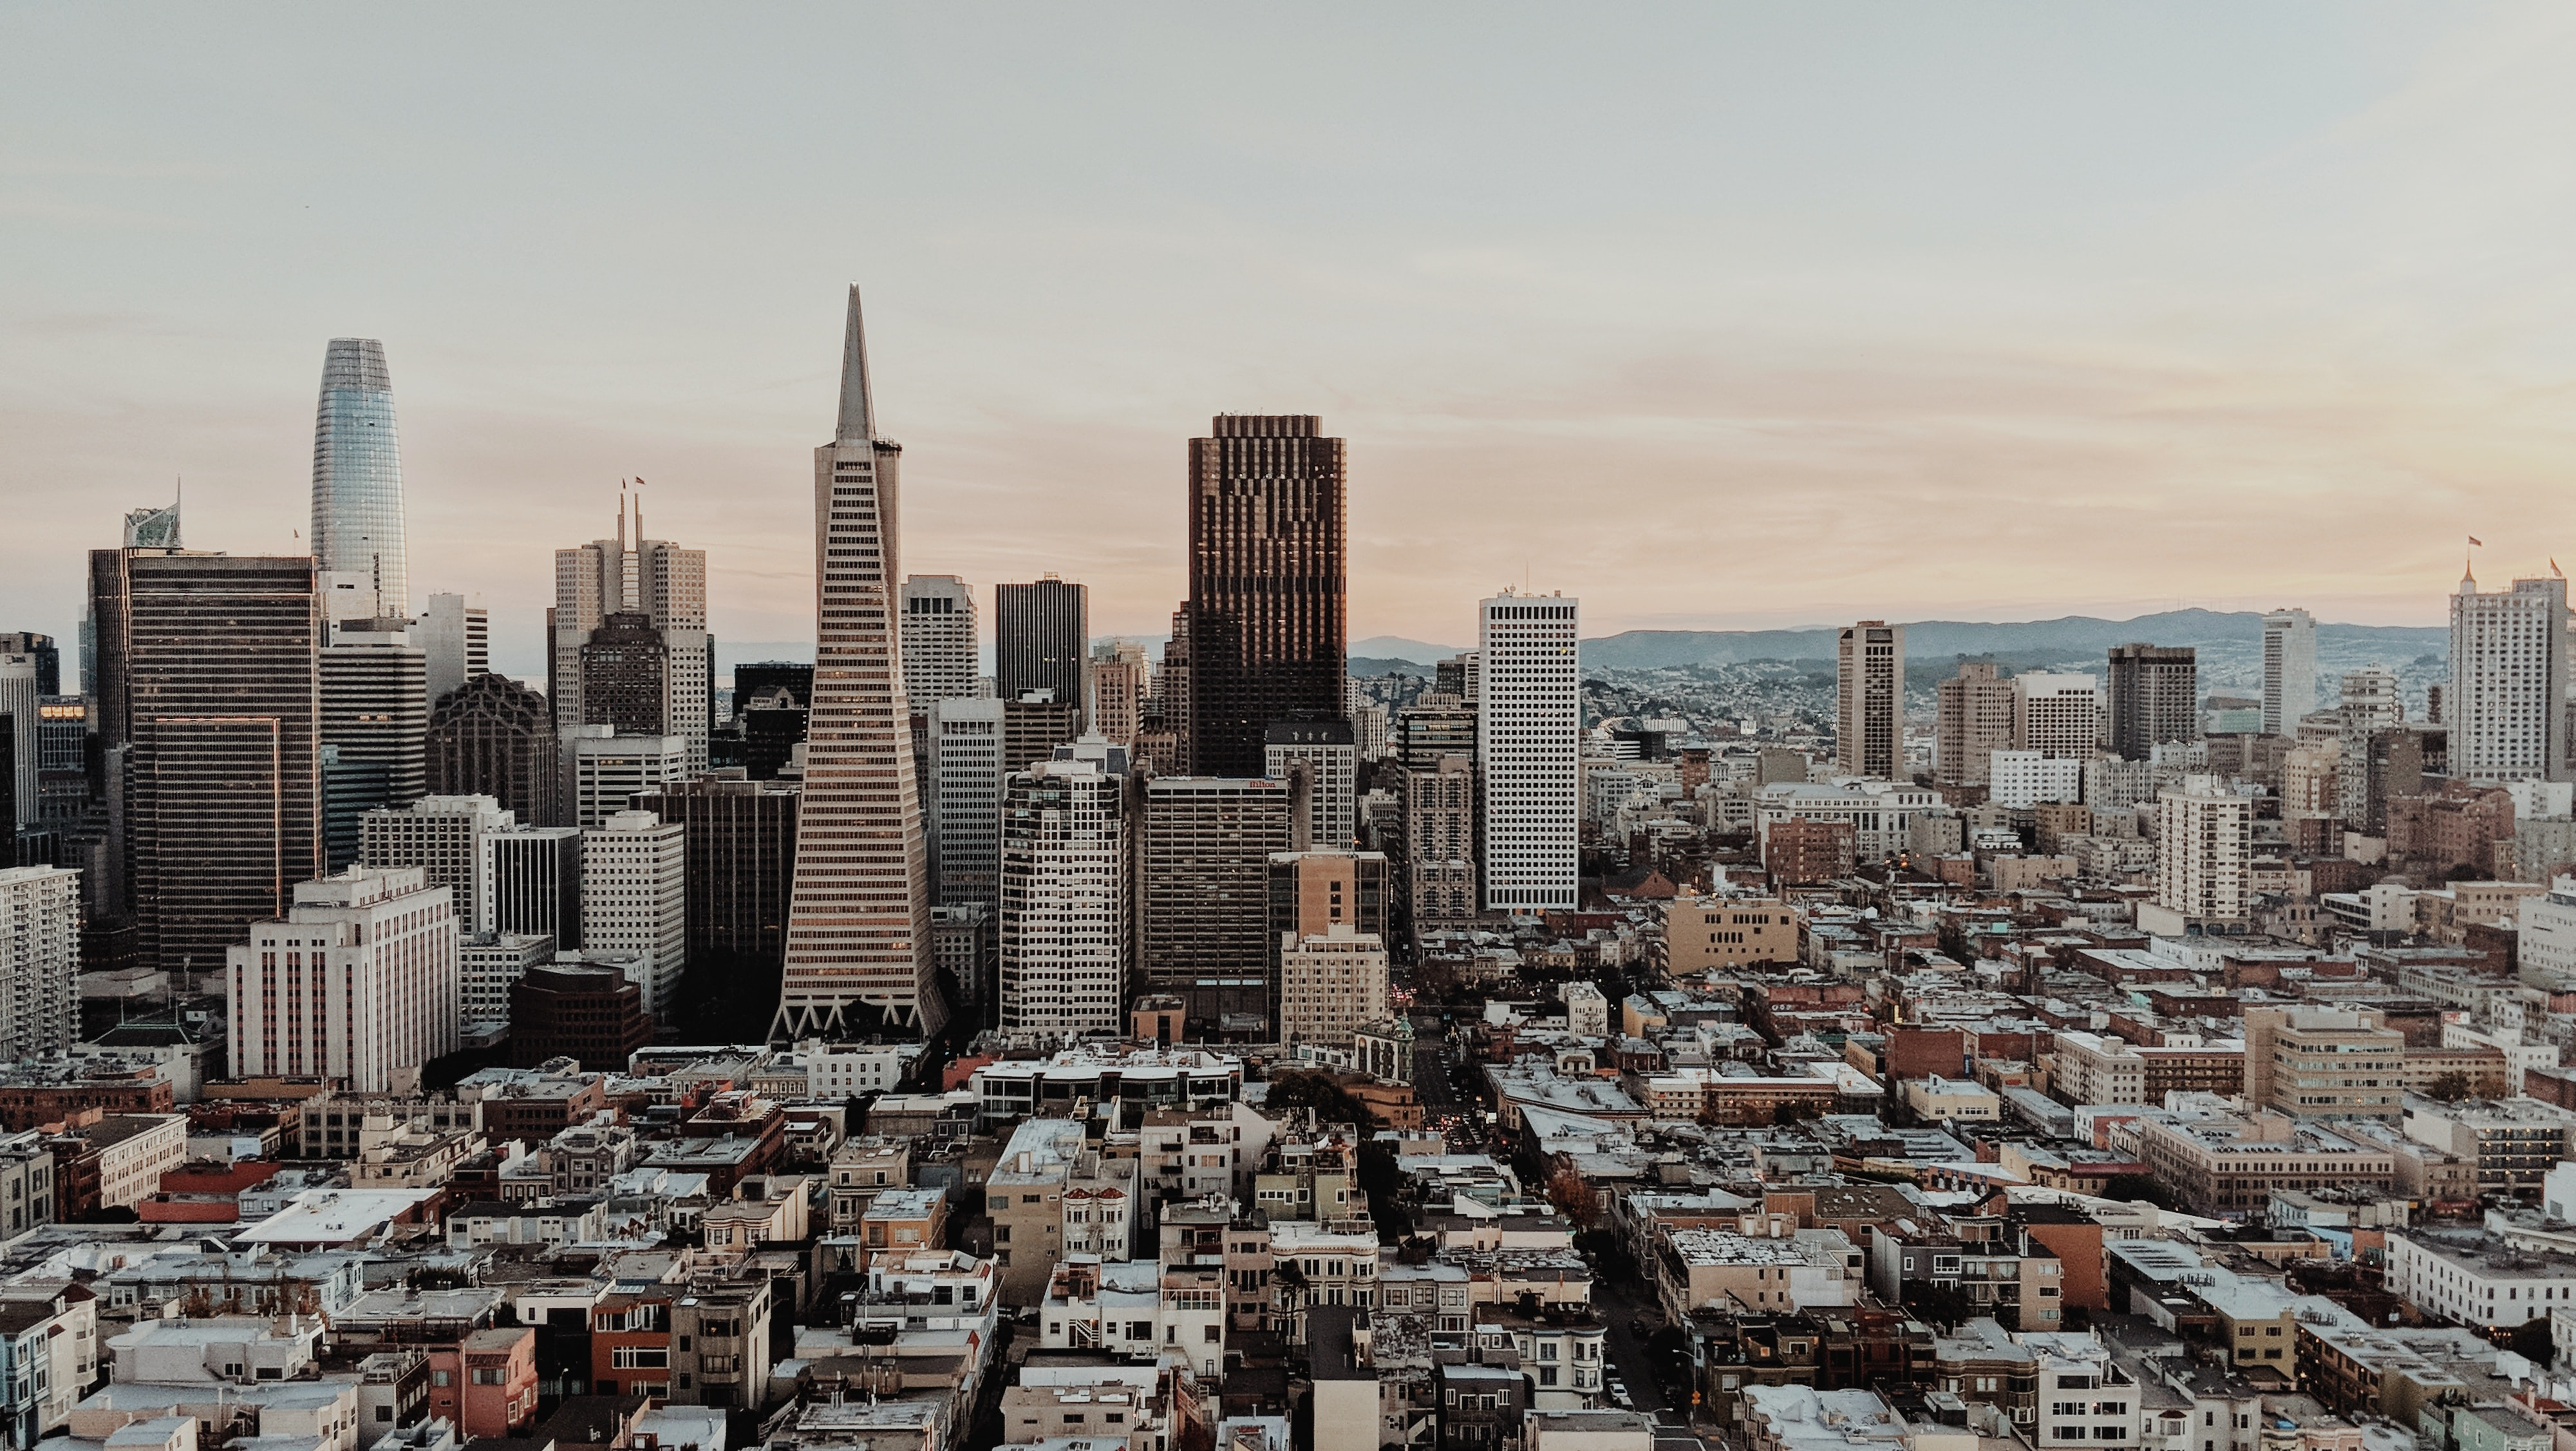 Guide to the California Consumer Privacy Act (CCPA): Requirements, Nuances, and Compliance